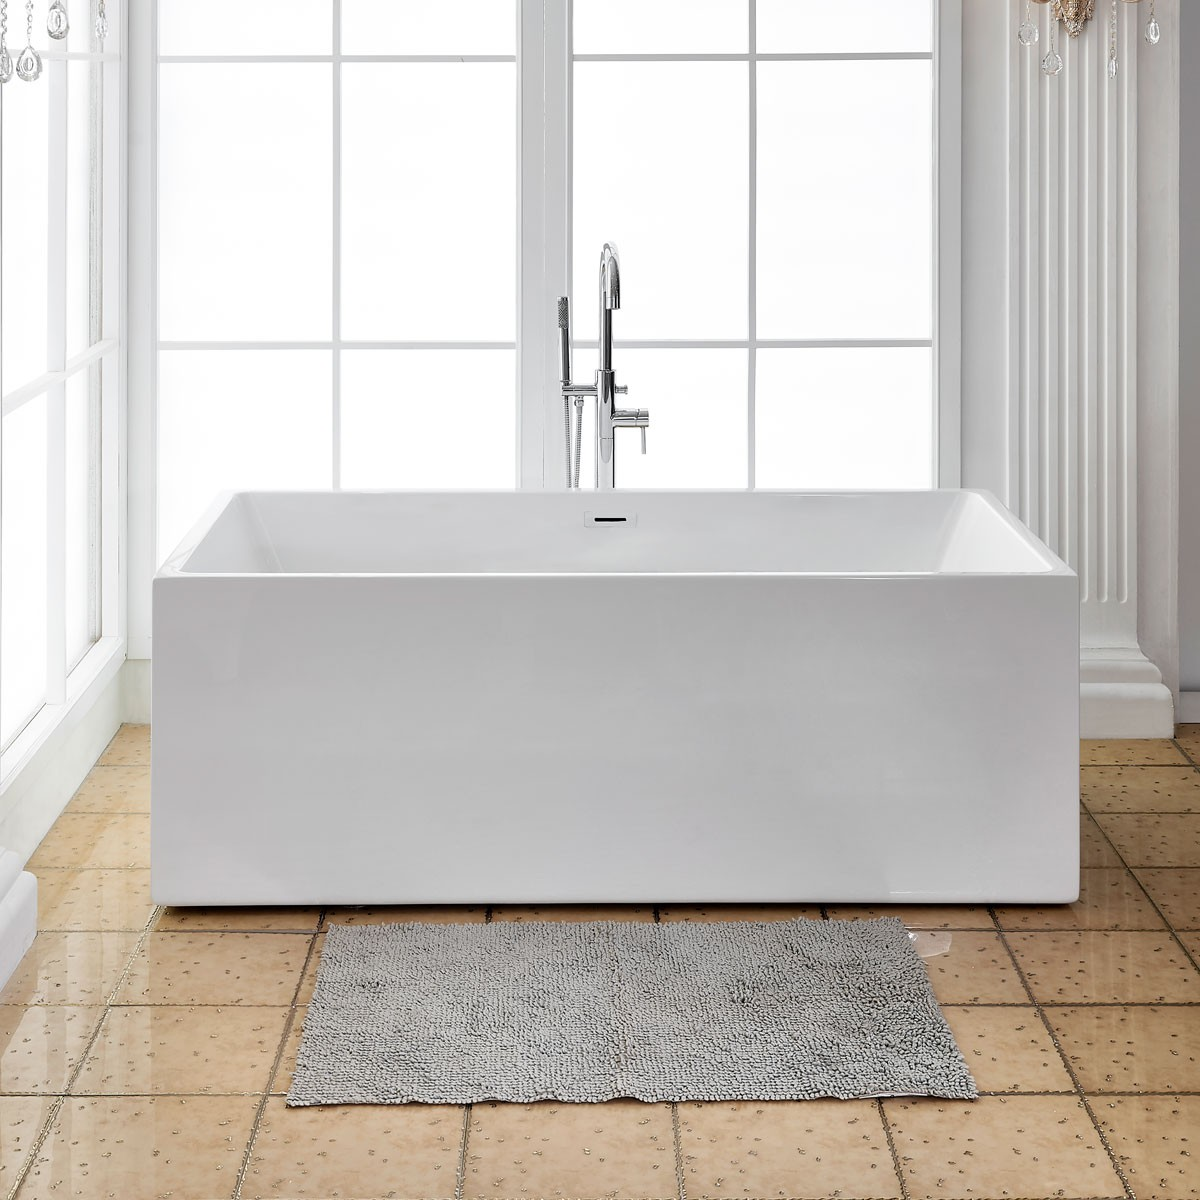 70 In Freestanding Bathtub - Acrylic Pure White (DK-PW-1764)